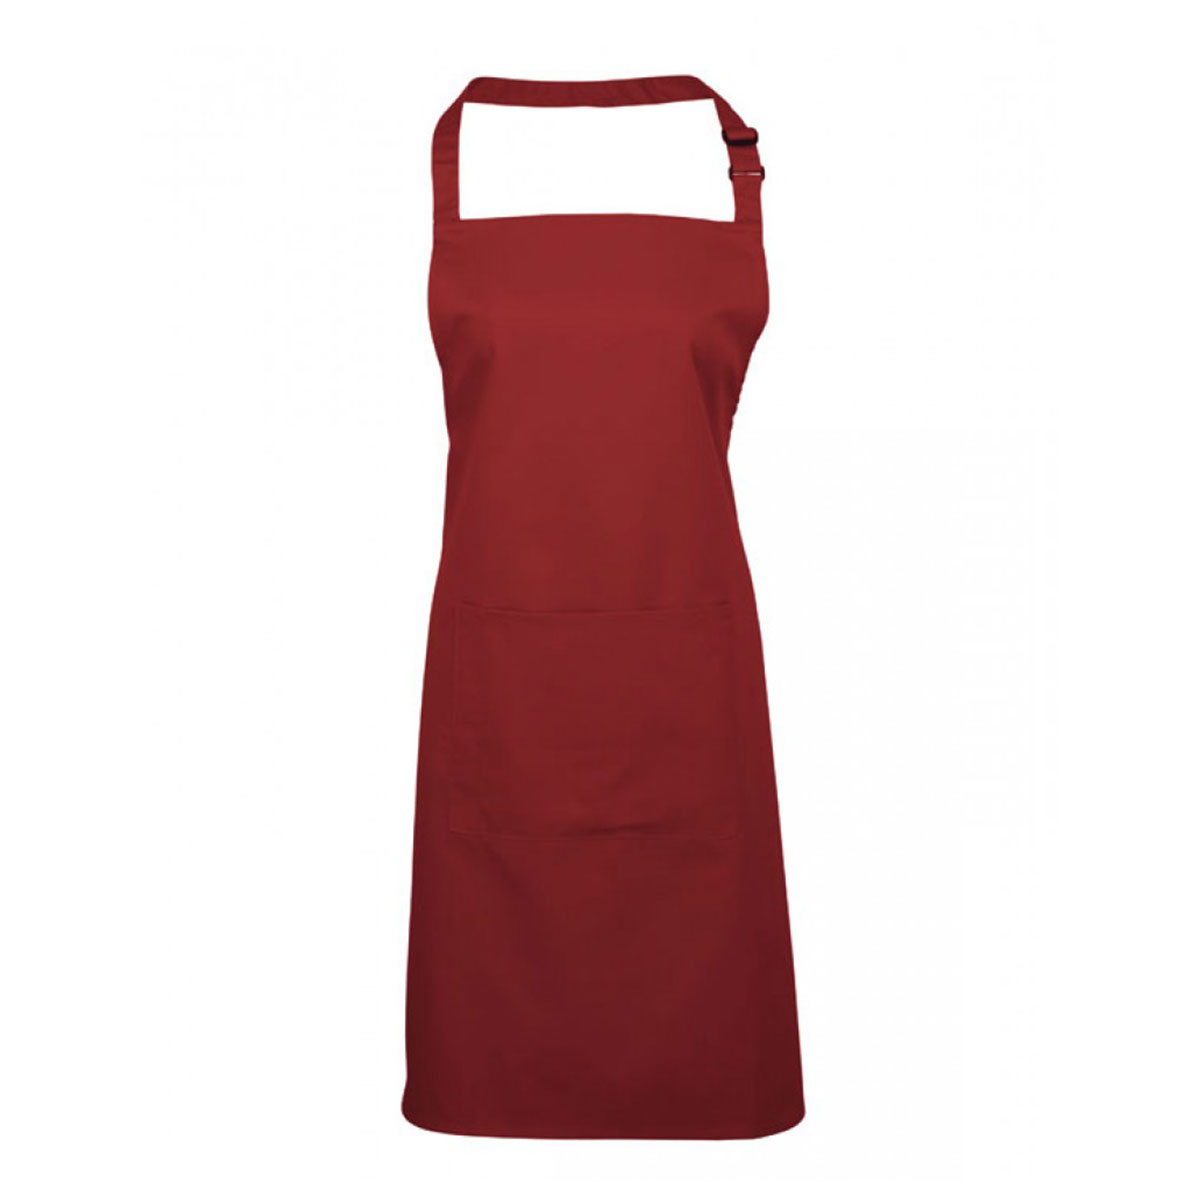 Colours Bib Apron with Pocket - pr154_burgundy